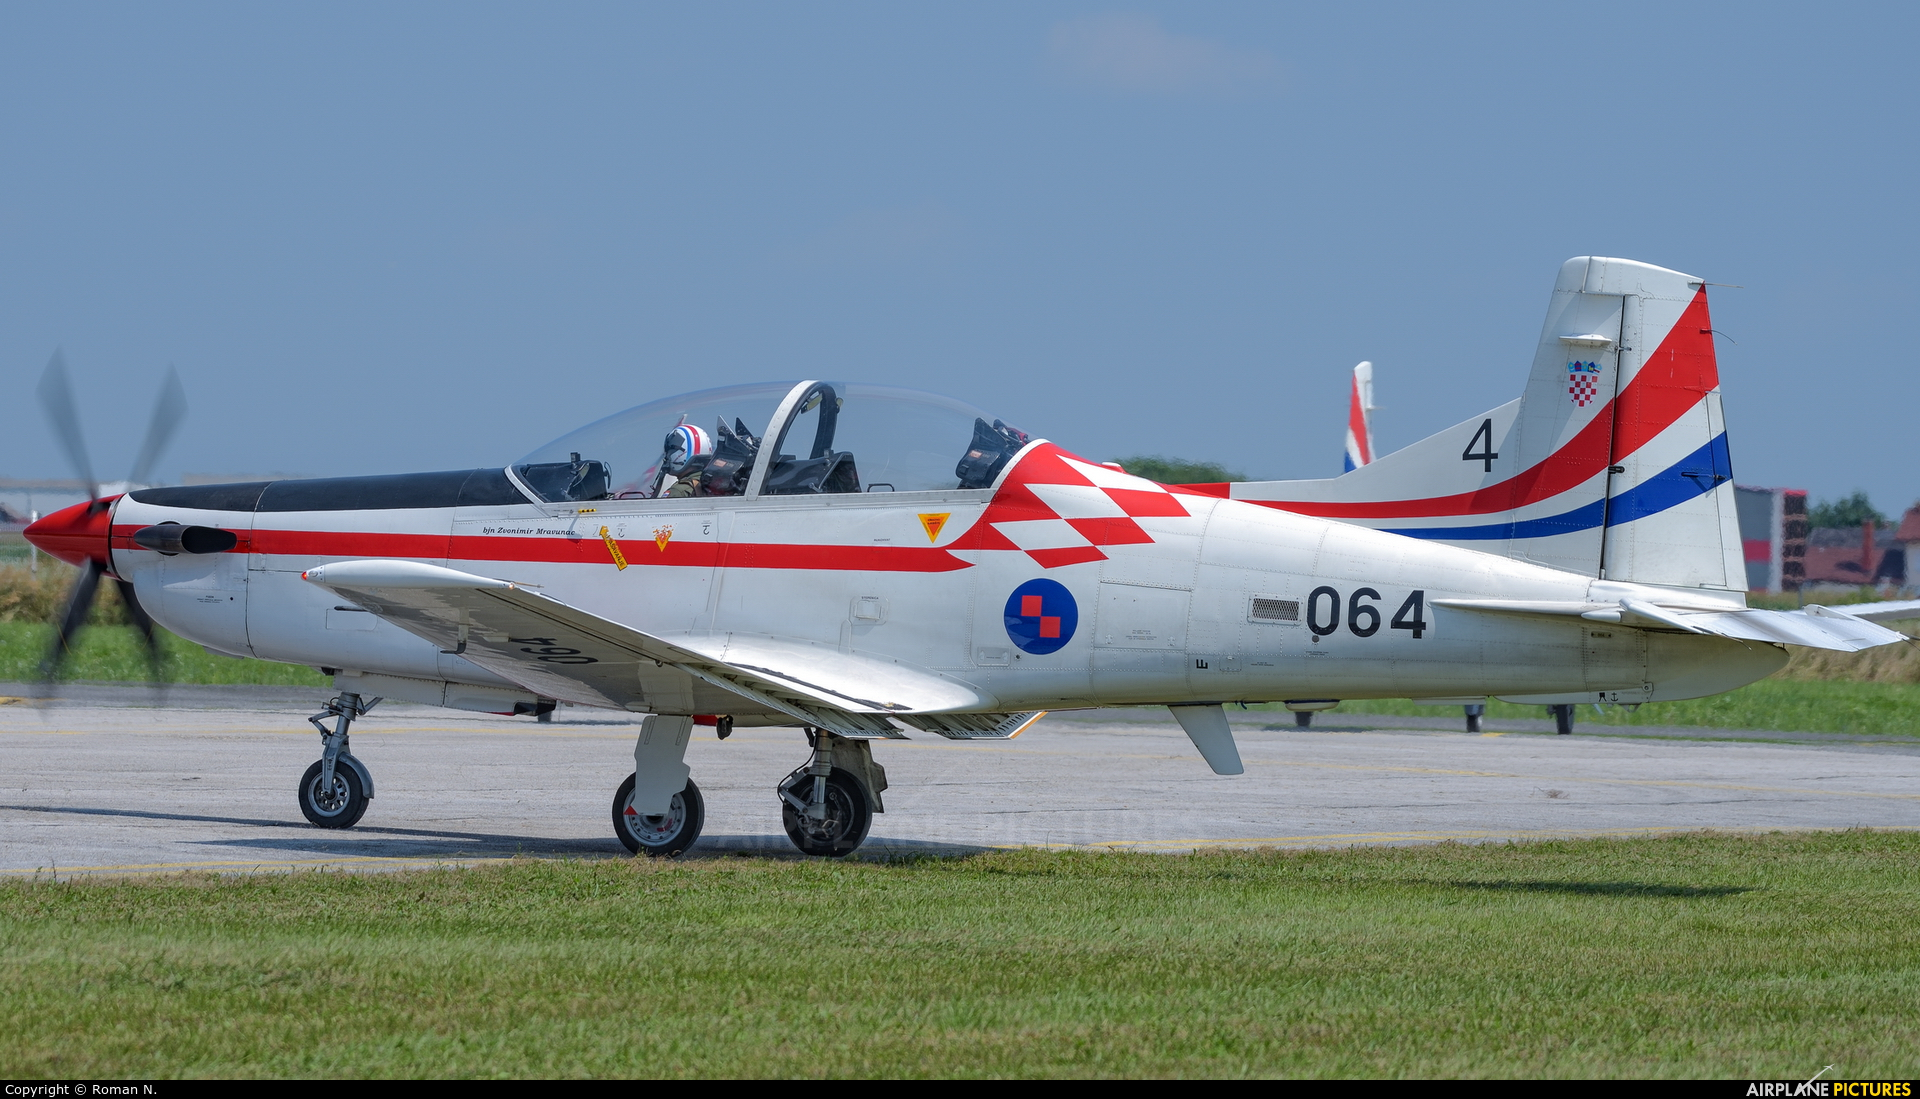 Croatia - Air Force 064 aircraft at Varazdin